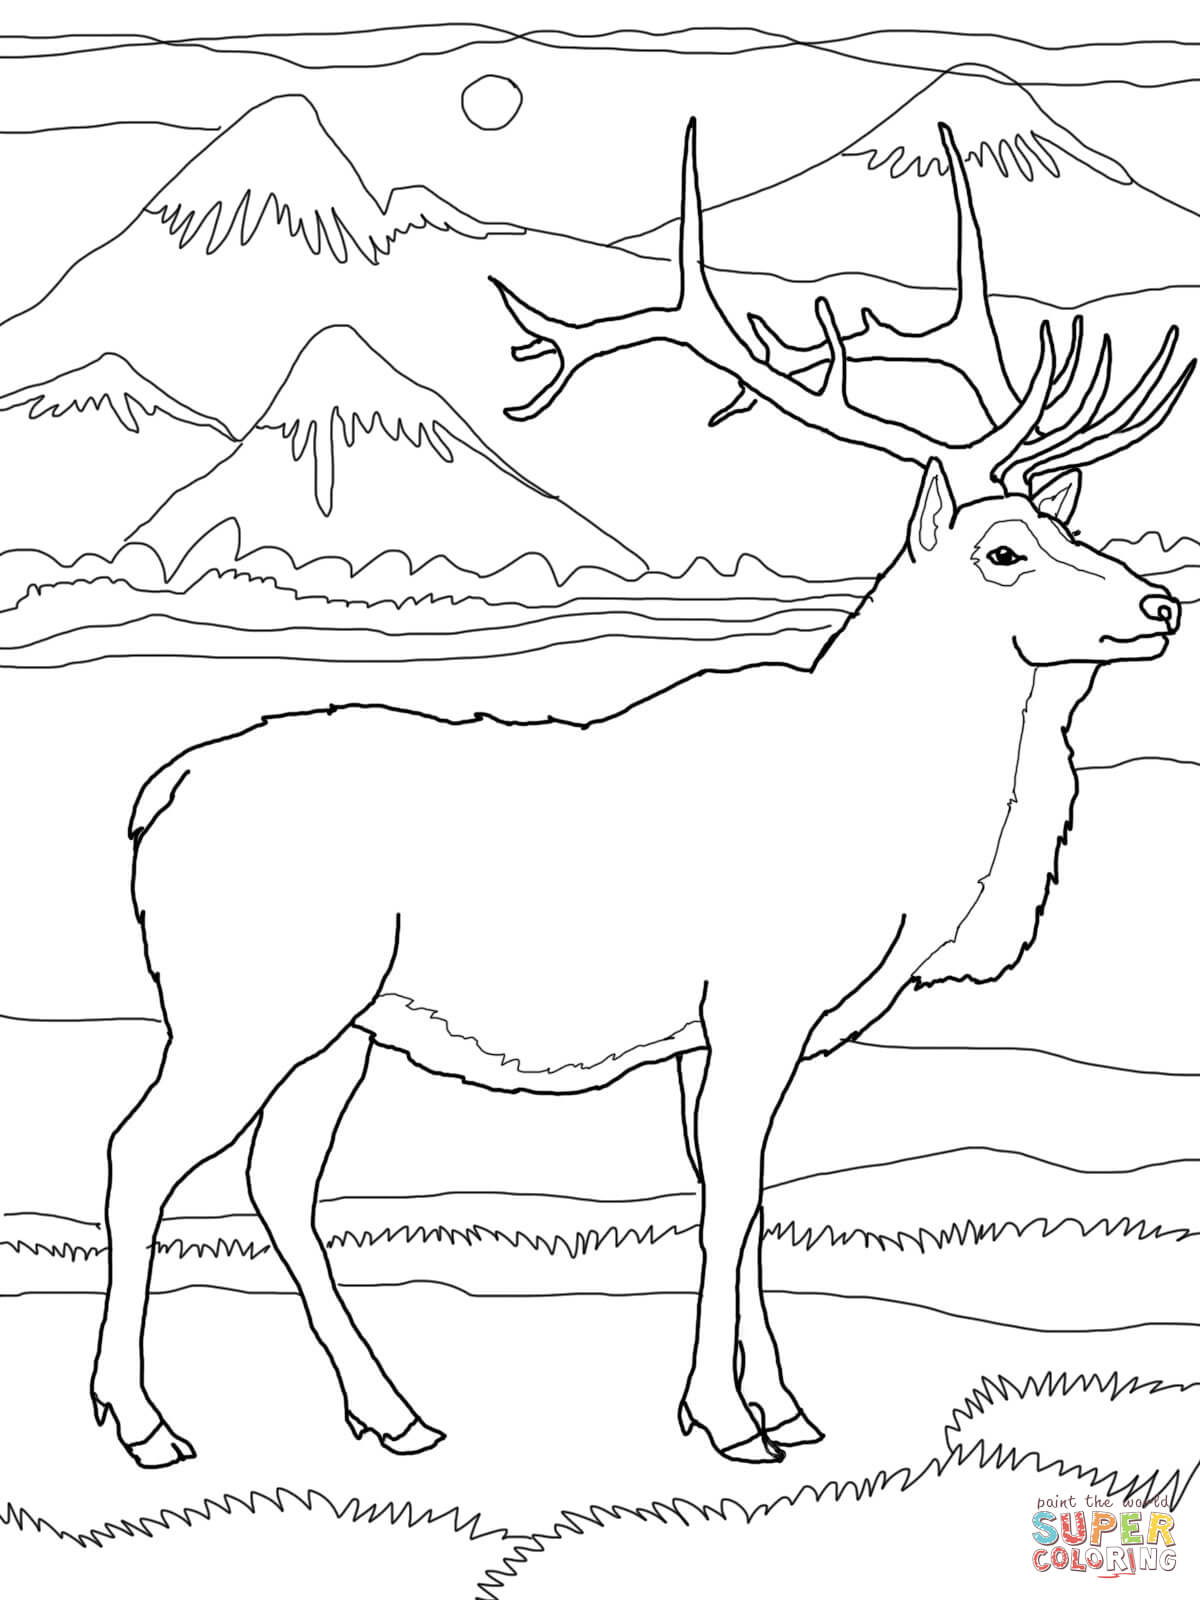 elk coloring pages bull elk coloring pages download print online coloring pages coloring elk